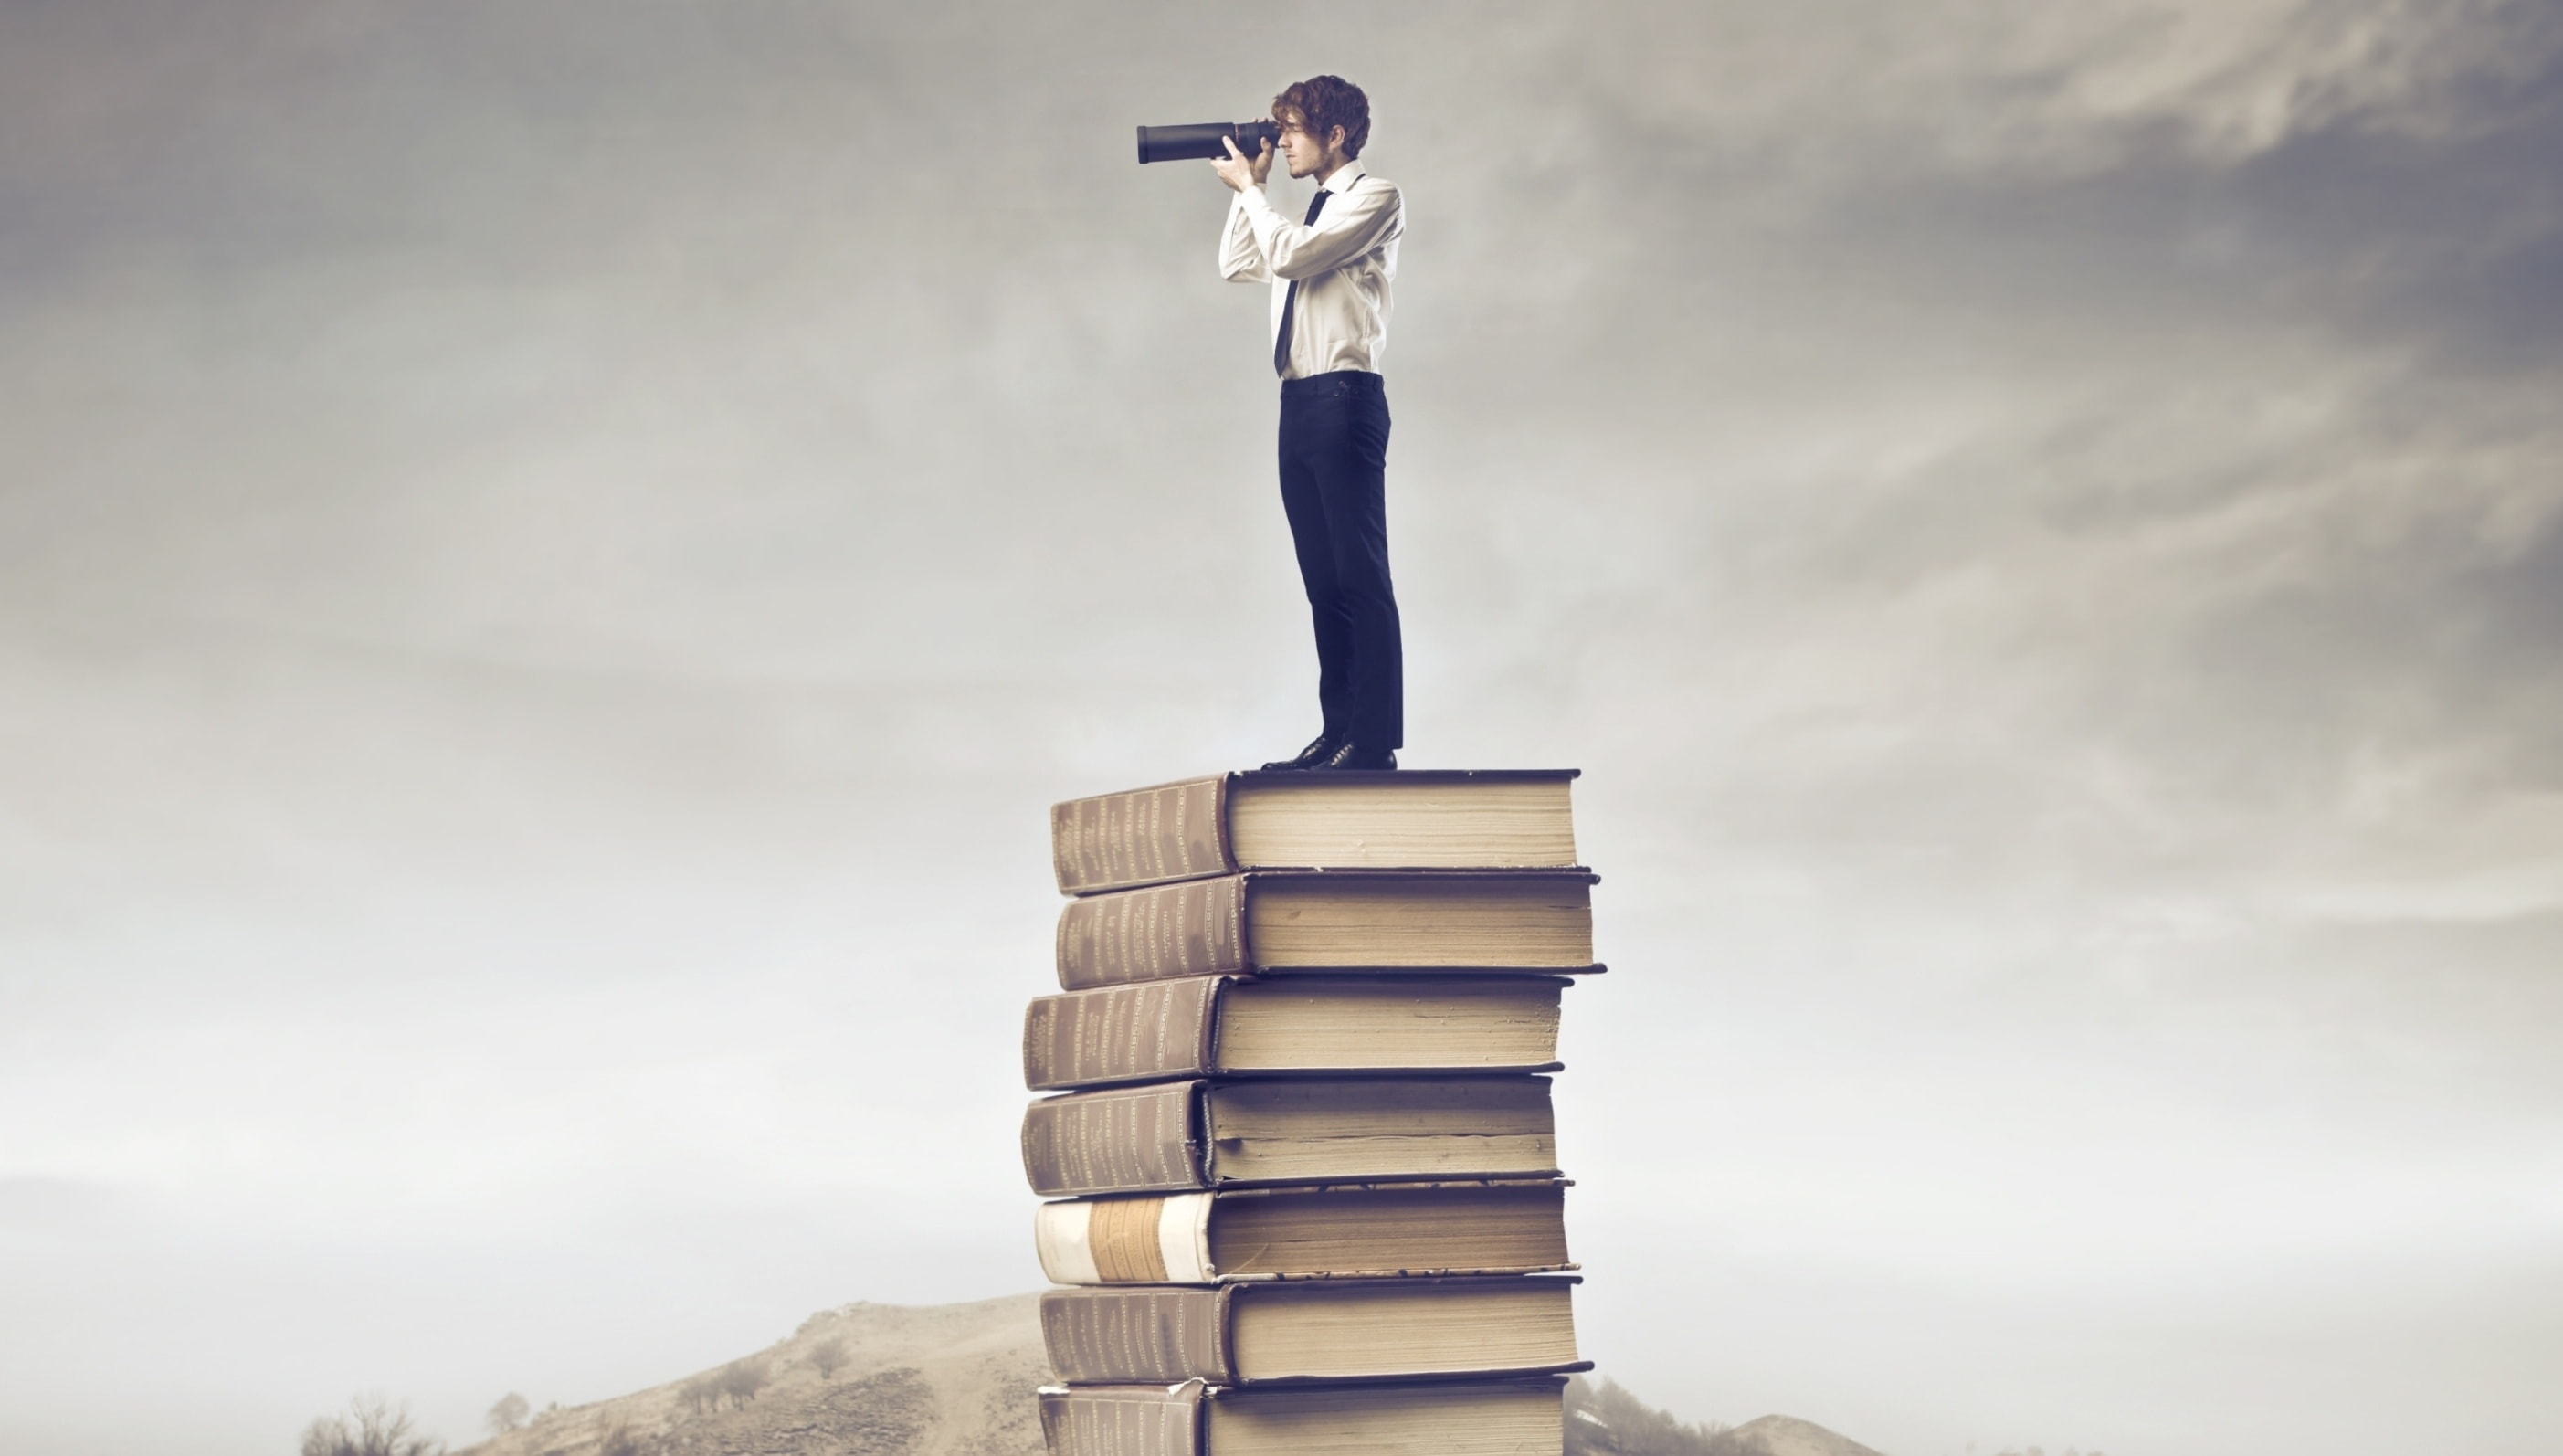 Explore-The-World-With-Books-2880x1920-min